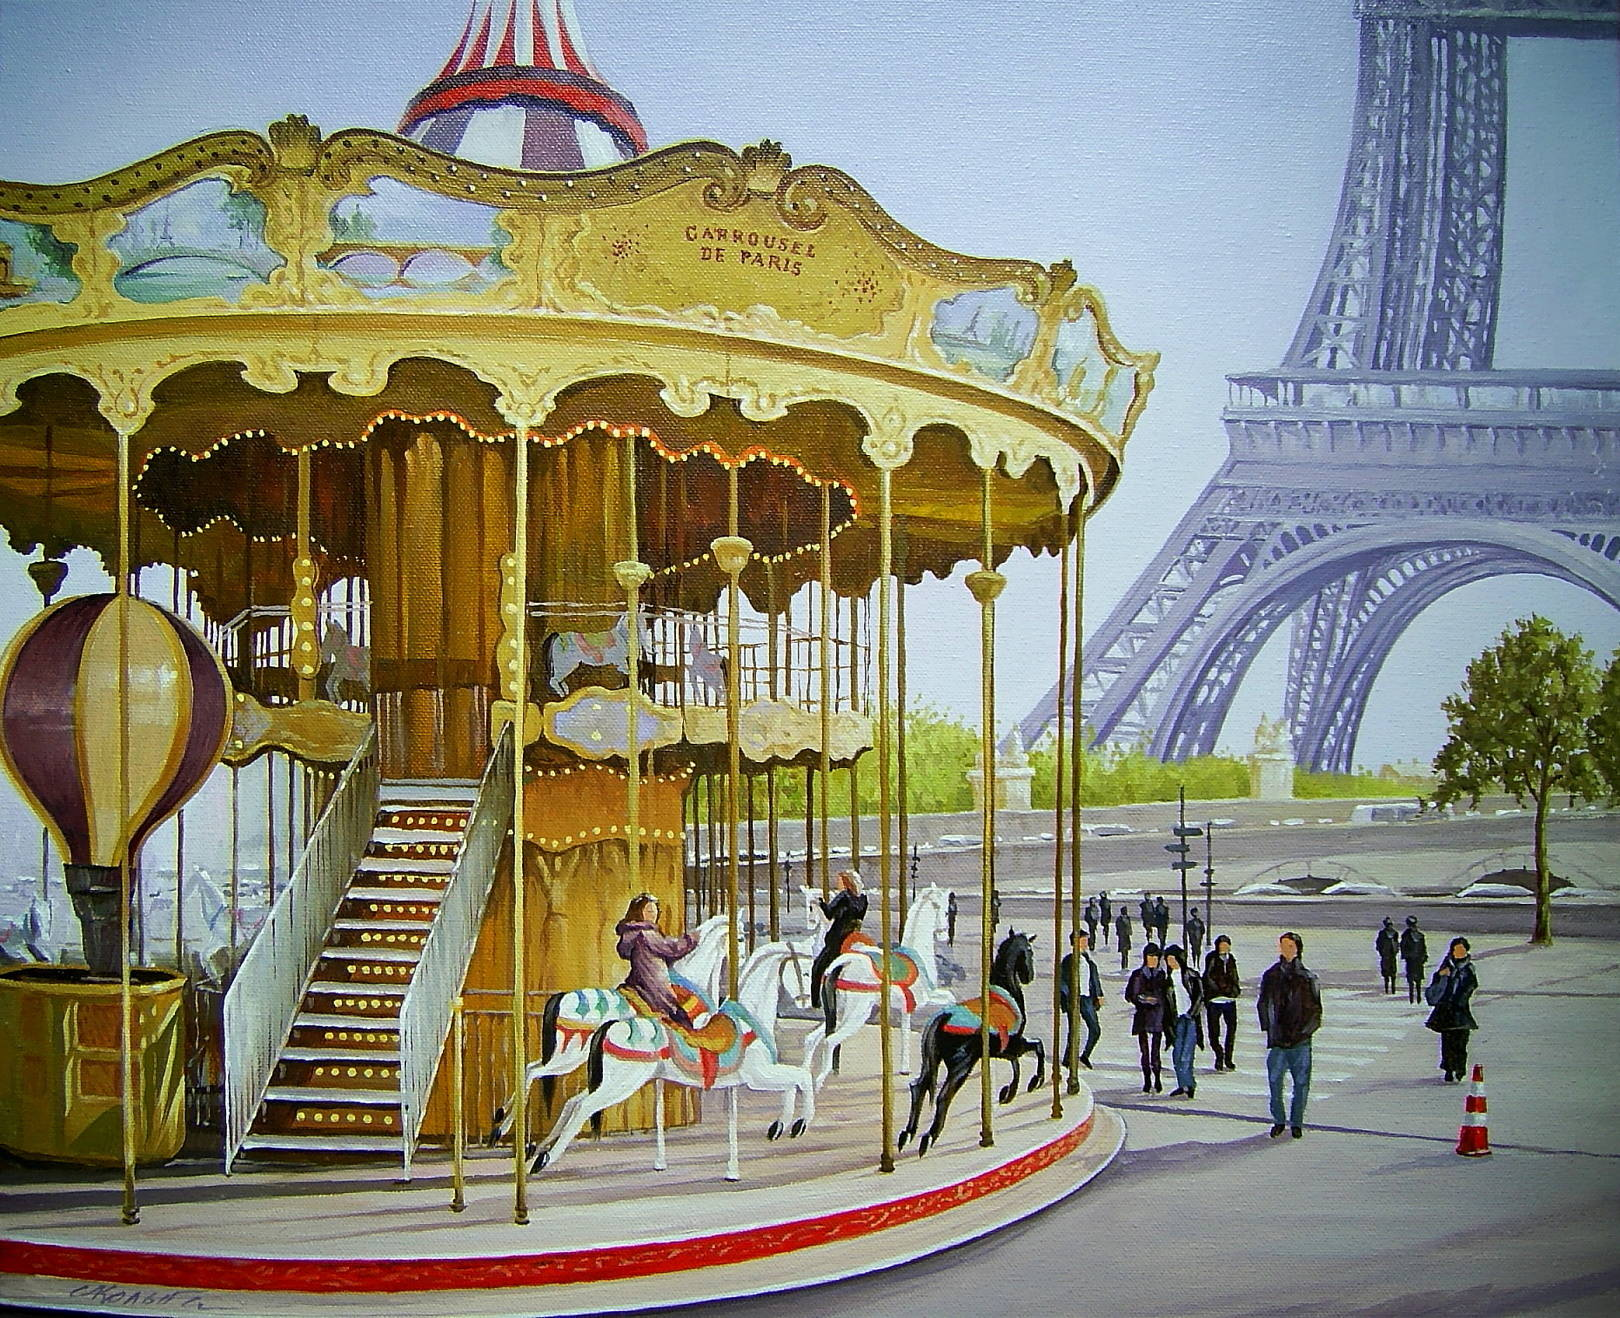 Carrousel de Paris. 50 х 60 см, холст, масло, 2018